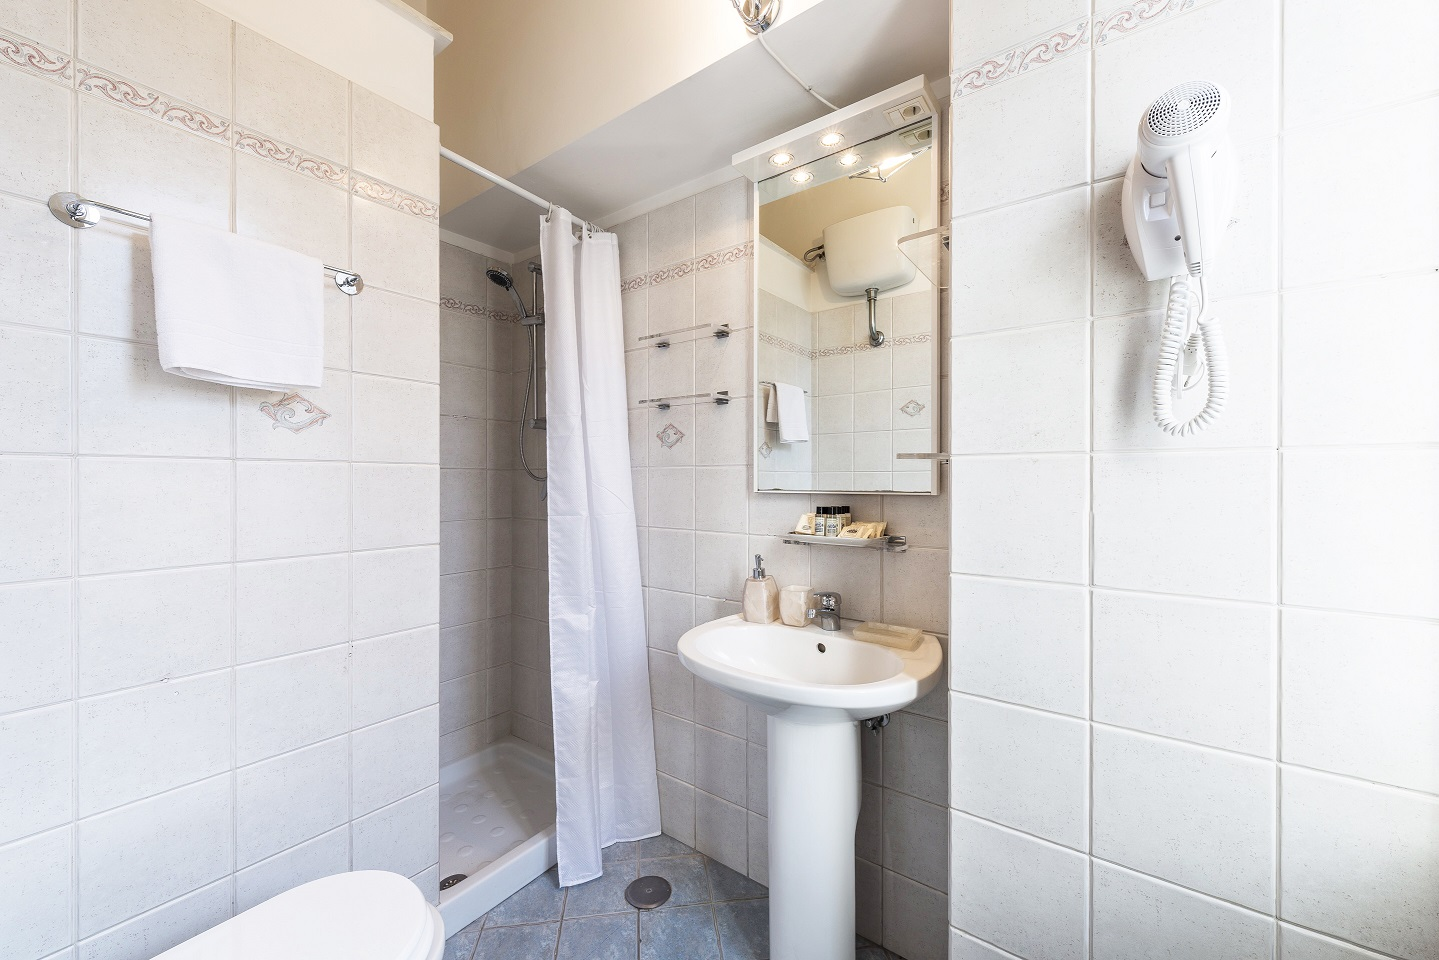 Bathroom at Nazionale Apartments - Citybase Apartments